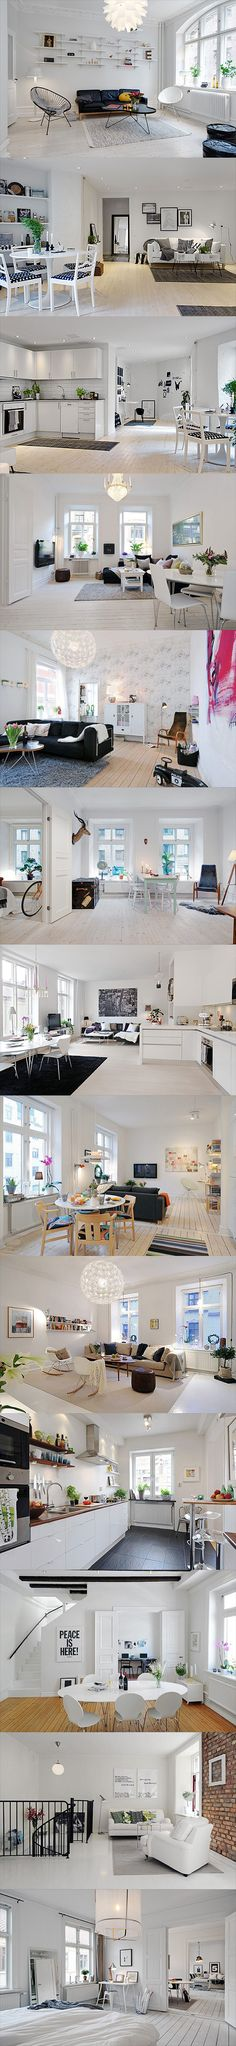 Beautiful & Stylish Scandinavian interior design inspiration  All windows - shelf to put plants as in Sweden Use big mirrors to give depth to rooms Landing = hanging light (pinned it Can use a light lamp fixed on a self to focus light Folding chairs Wall paper - Black pattern on white background  Kitchen - knife magnet shelves - (pinned)